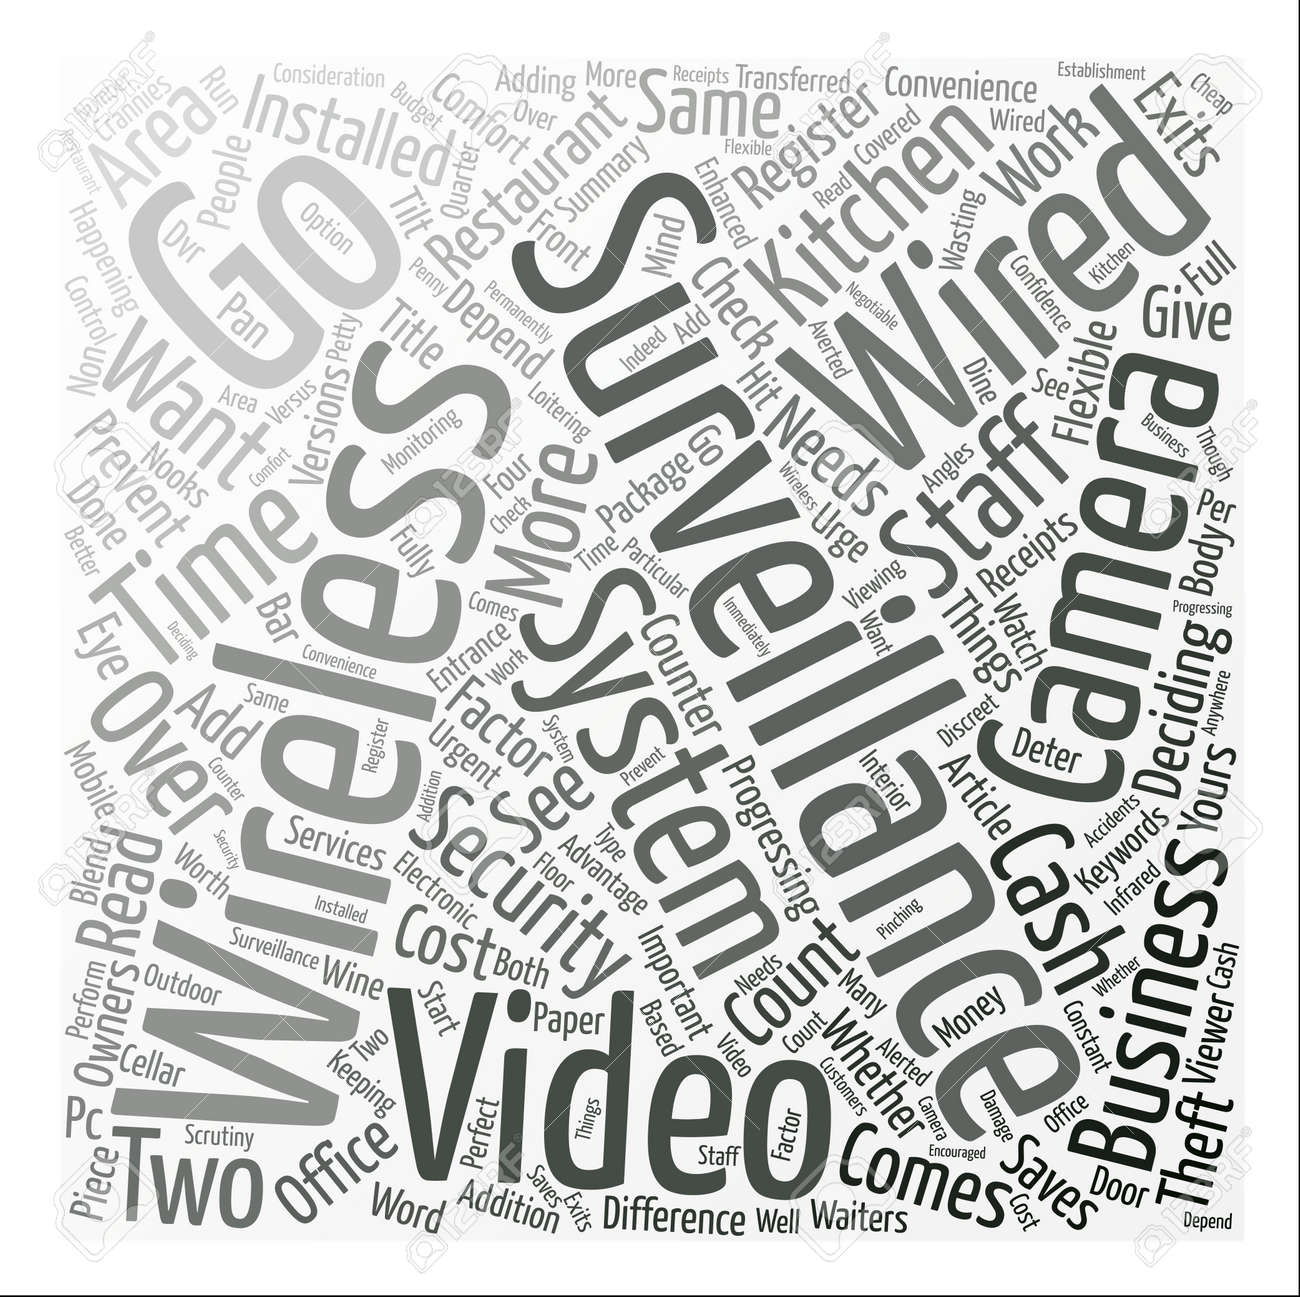 Wired Or Wireless Video Surveillance What s The Difference Word